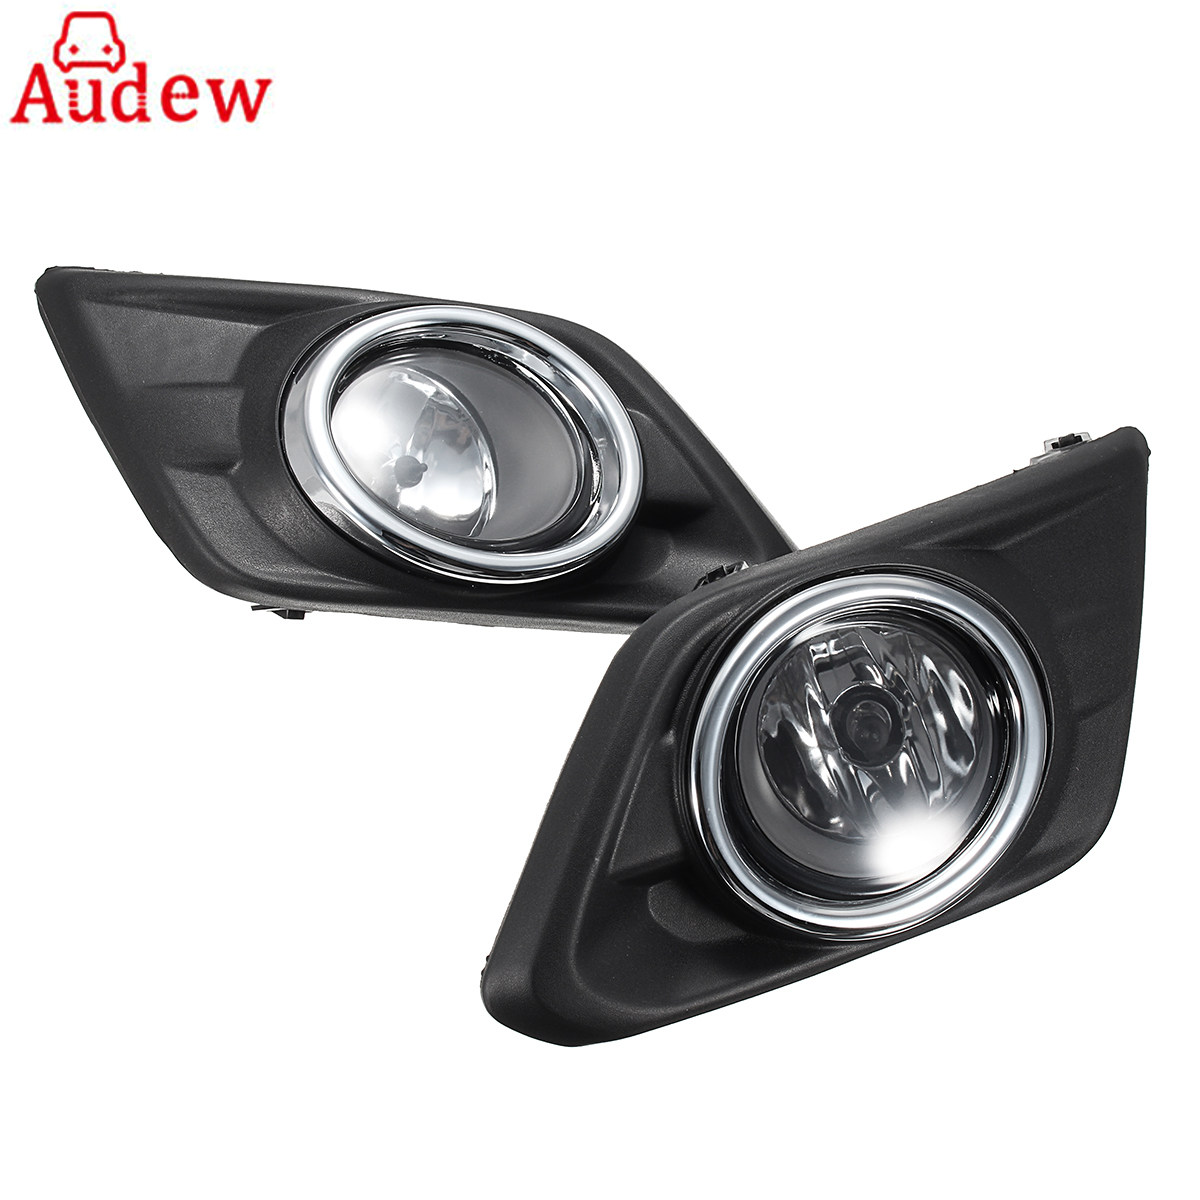 1Pair Chrome Clear Lens Car Fog Light Lamp For Nissan Rogue SUV 14-16 w/Bulbs Switch Bezel Kit<br>